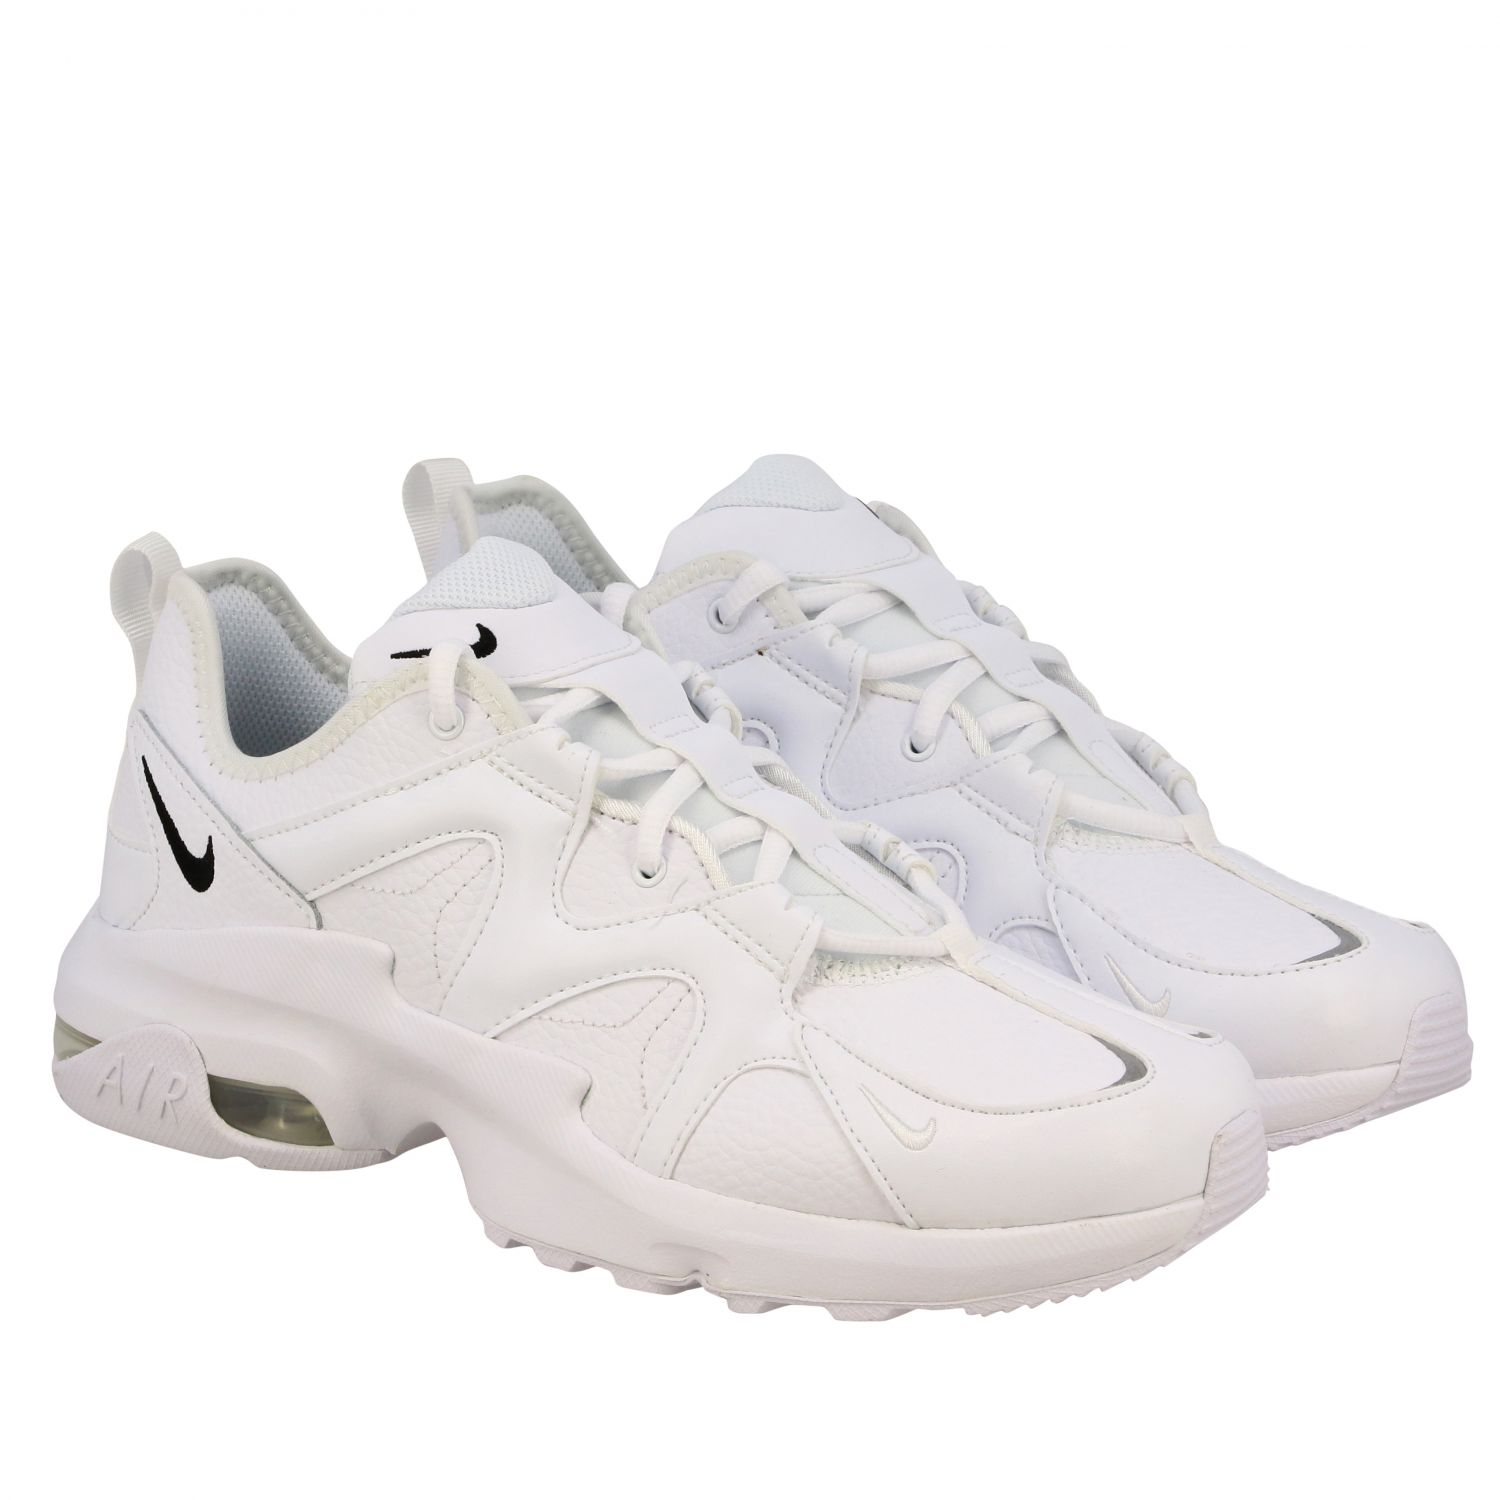 Chaussures homme Nike blanc 2